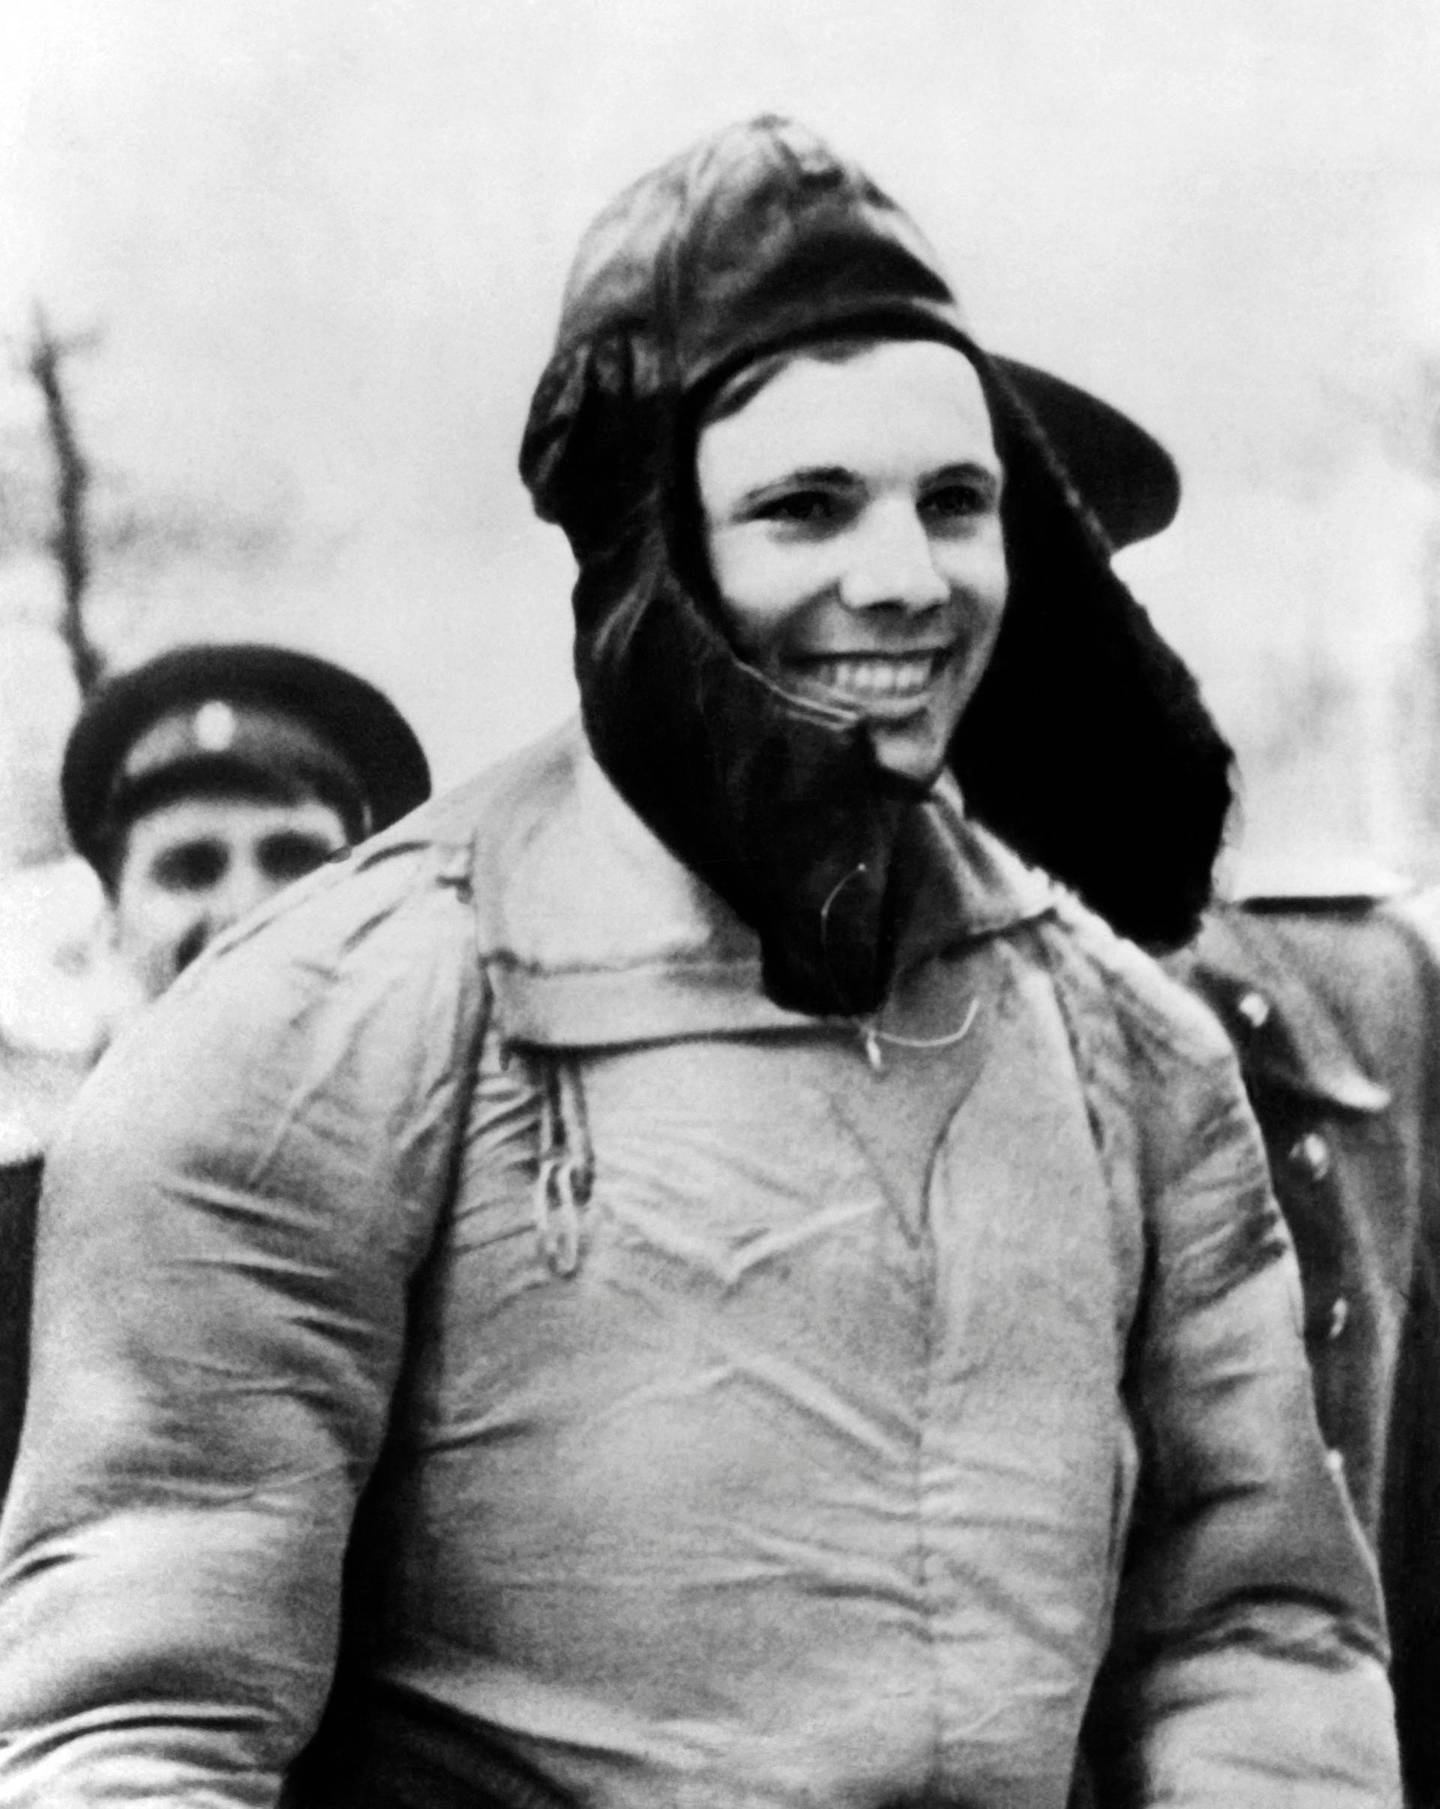 (FILES) In this file photo Soviet cosmonaut Yuri Gagarin is seen in 1961. He became the first human to travel in space aboard Vostok I and the first to orbit the earth on April 12, 1961. Sixty years ago Monday Soviet cosmonaut Yuri Gagarin became the first person in space, securing victory for Moscow in its race with Washington and marking a new chapter in the history of space exploration. / AFP / TASS / -